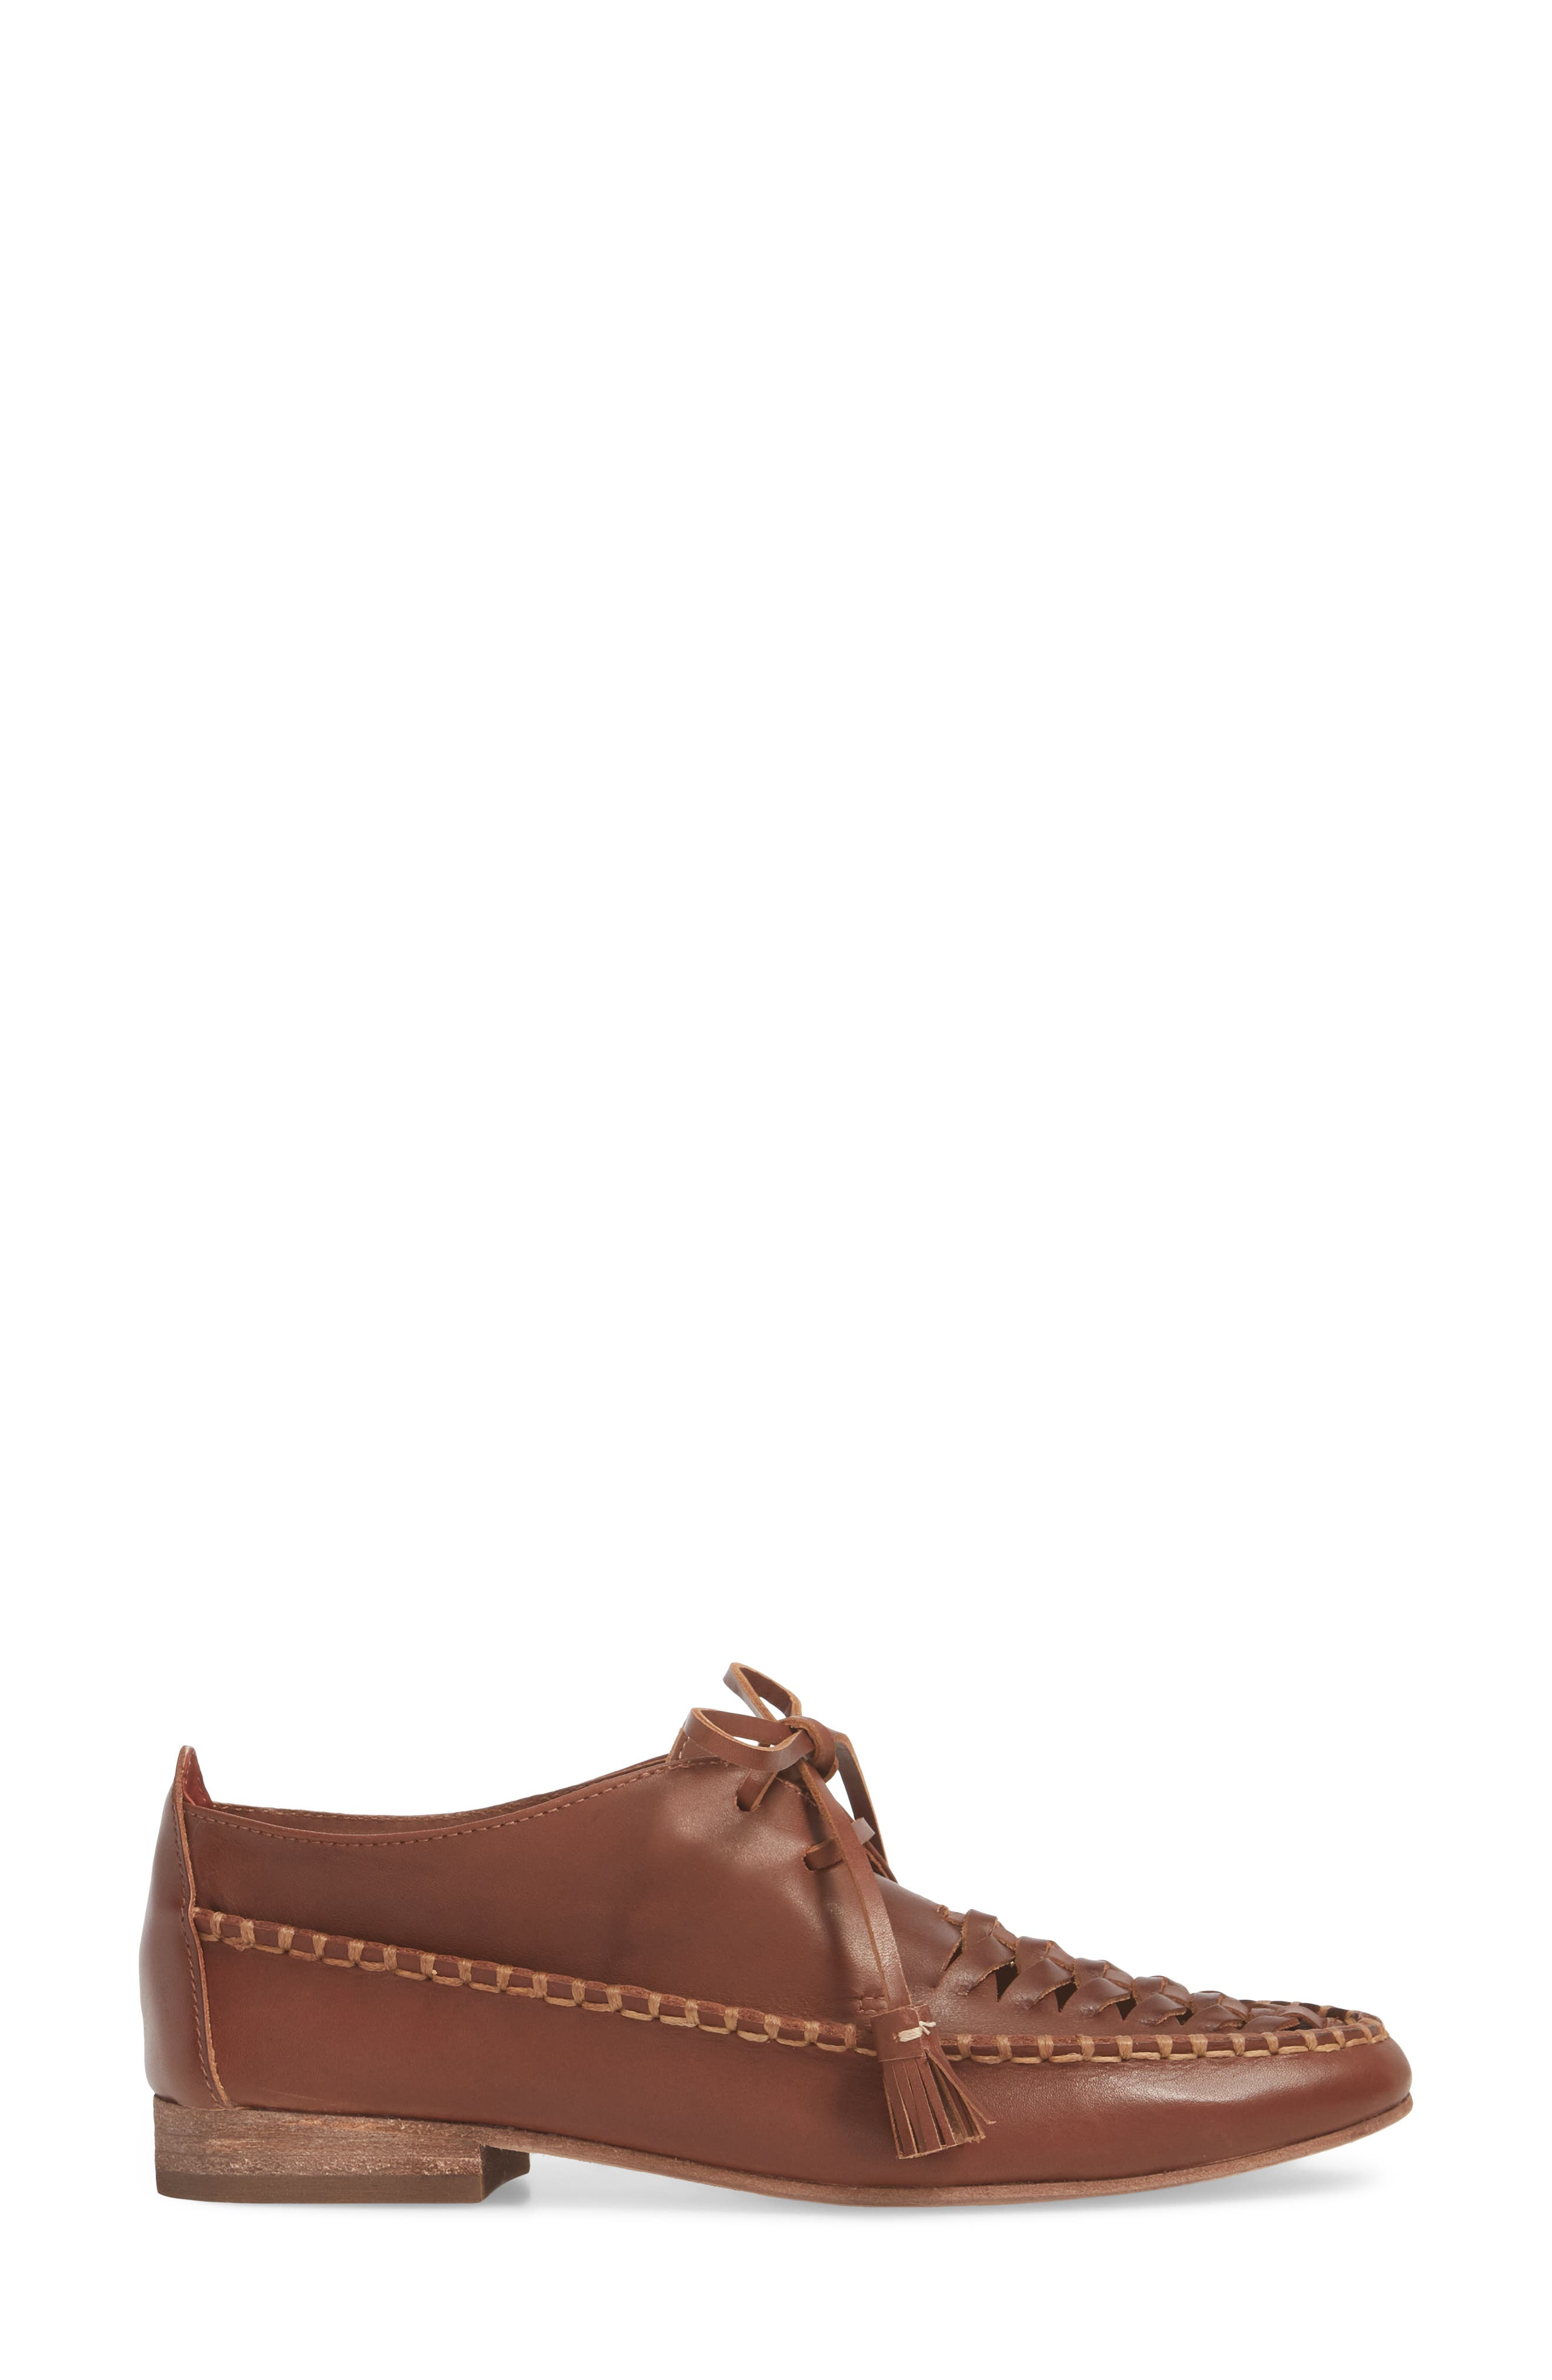 Lake Woven Loafer,                             Alternate thumbnail 3, color,                             CHESTNUT